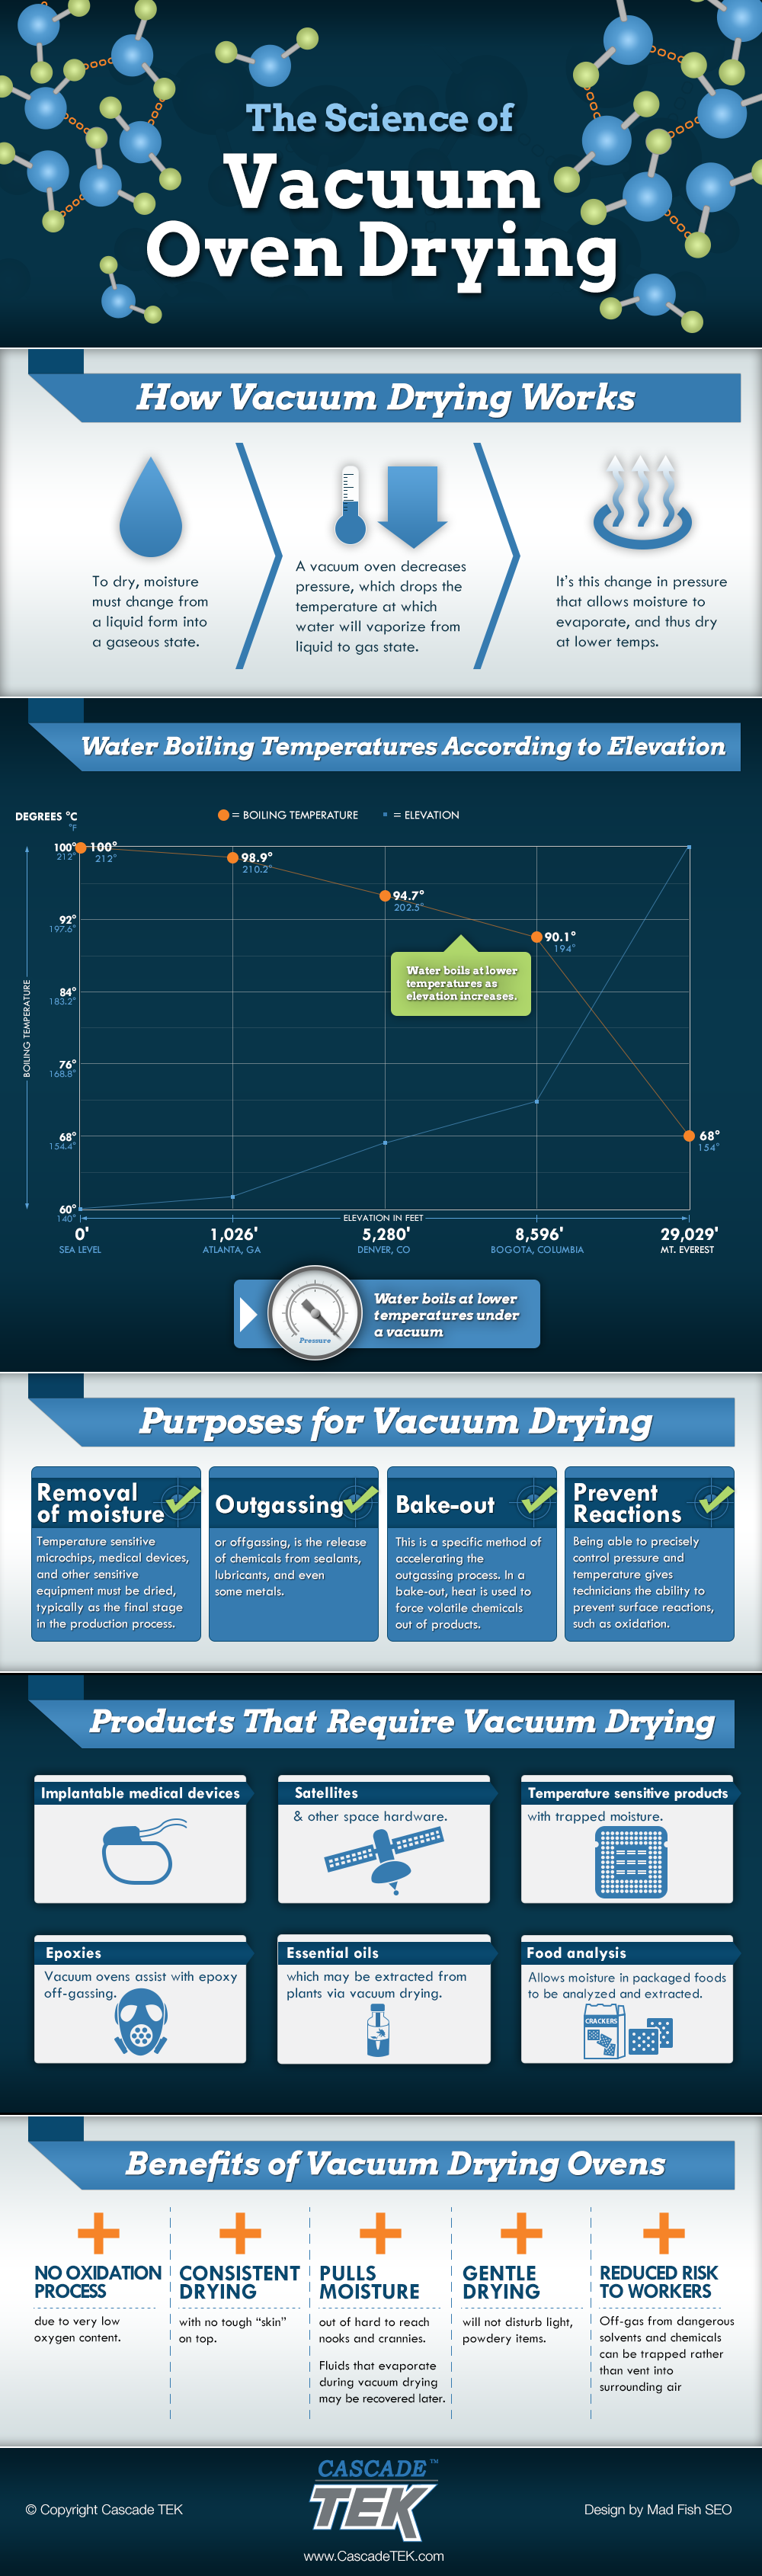 The Science of Vacuum Oven Drying